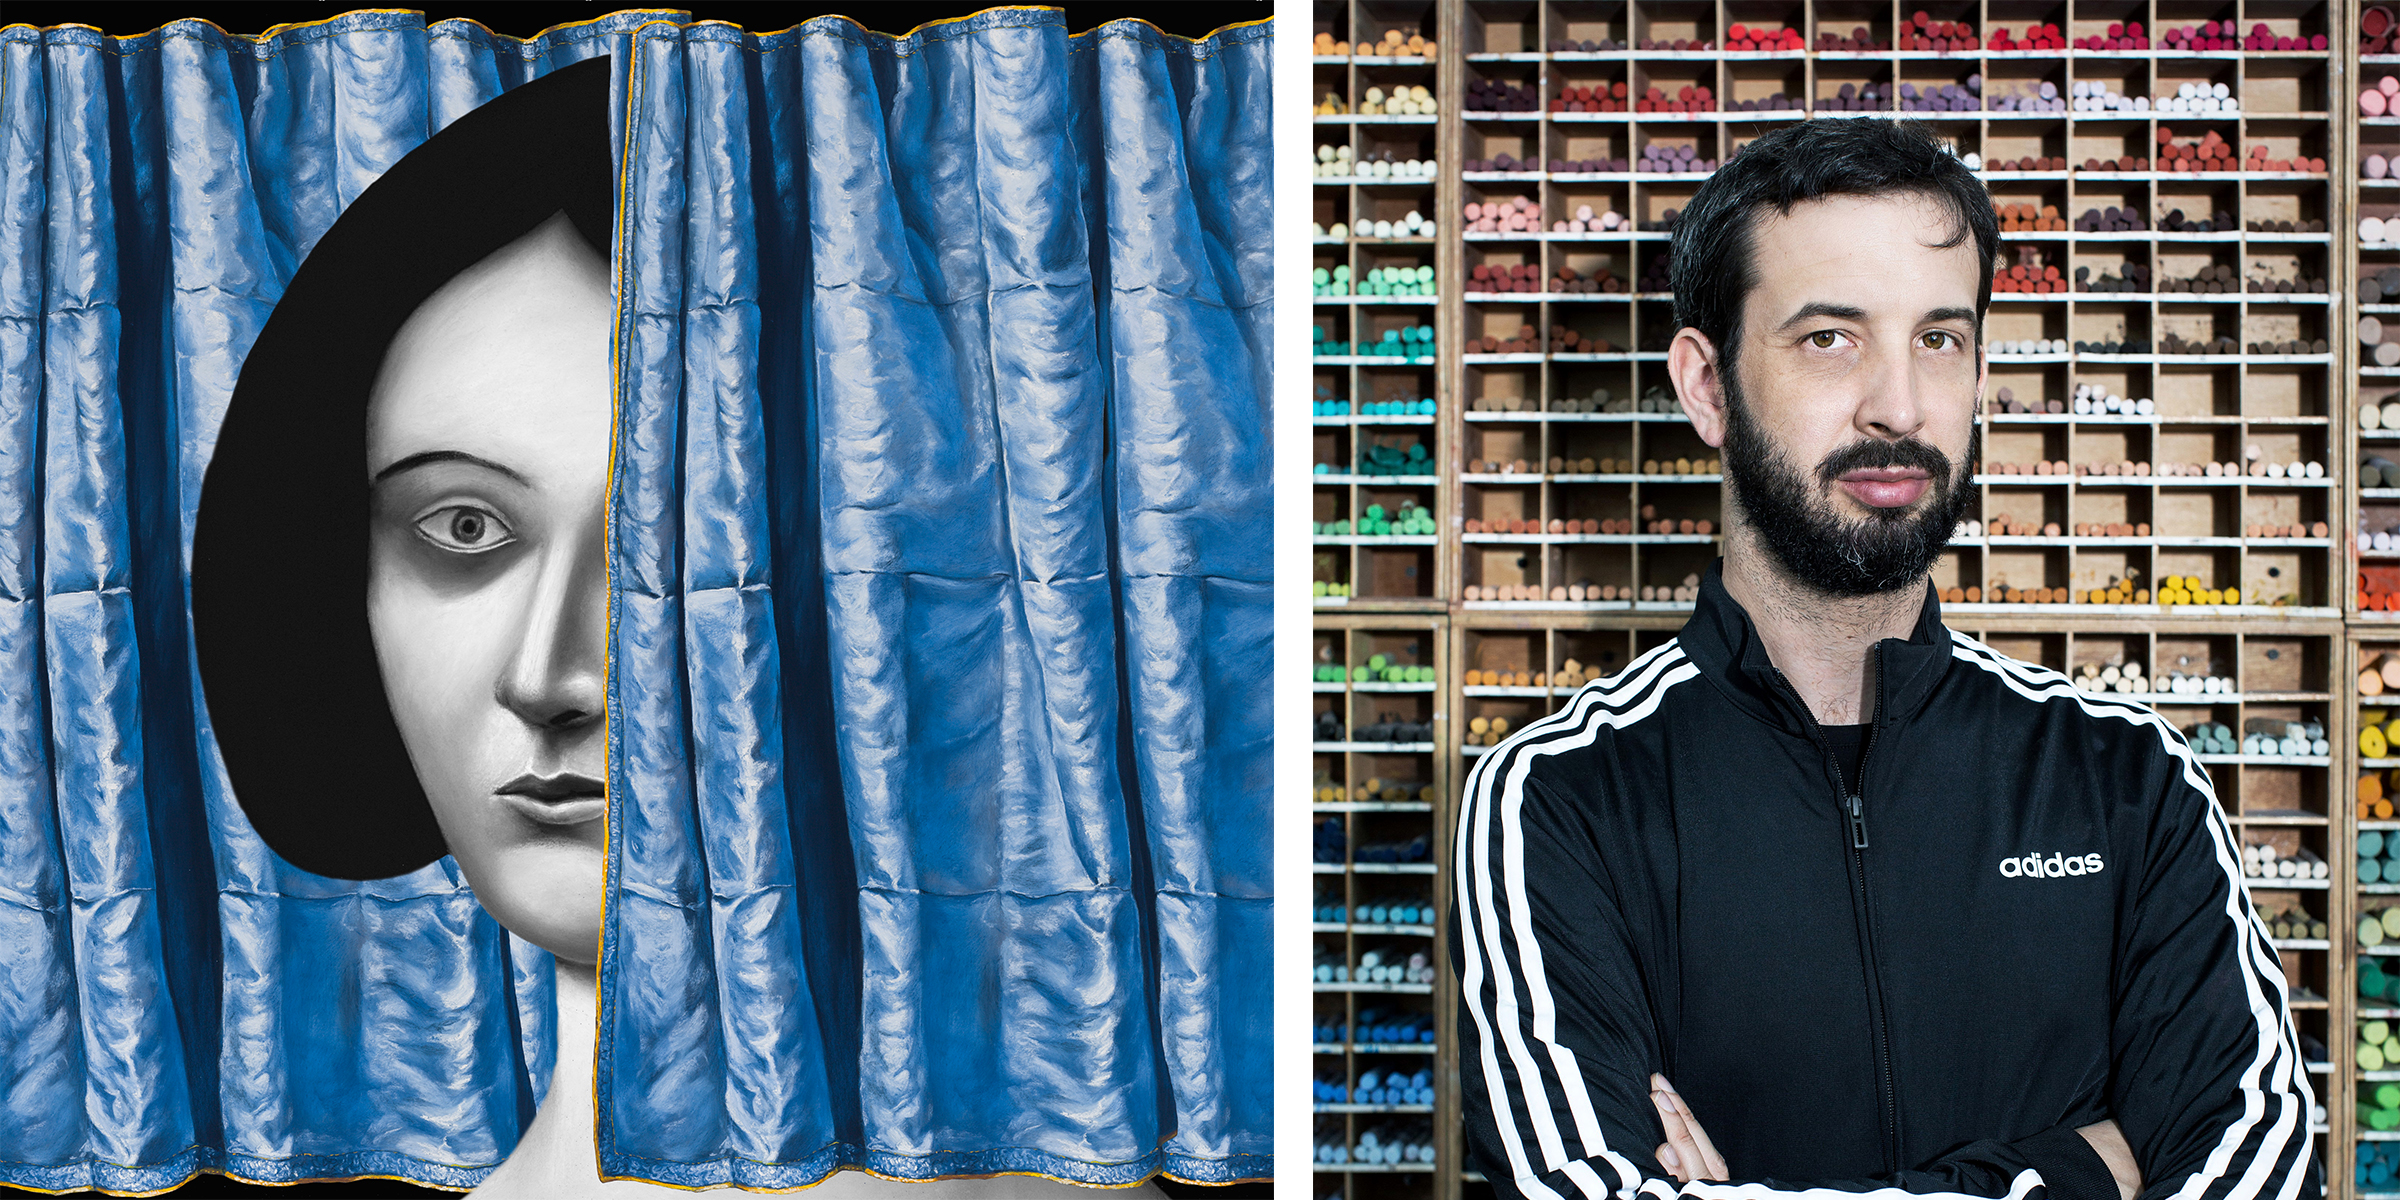 Left image: Detail of a painting. A woman's face peeks out behind a blue curtain. Right image: Portrait of Nicolas Party in front of a wall of stored pastels.